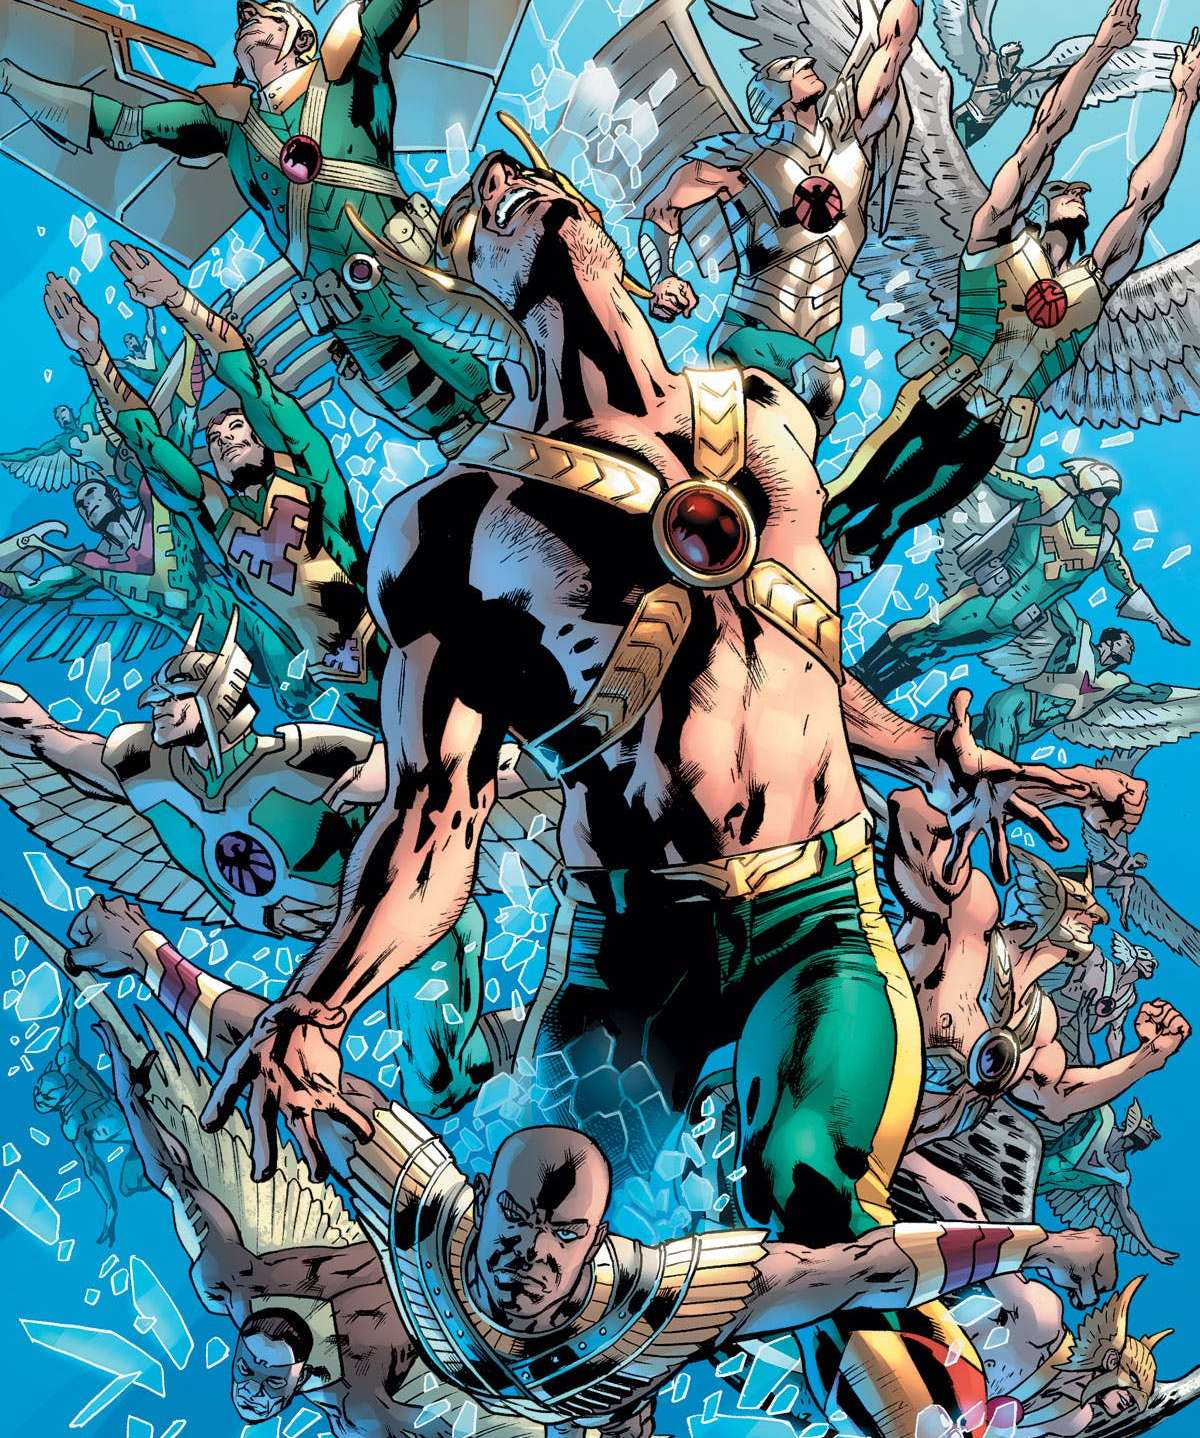 The great epiphany of Hawkman by Venditti and Hitch